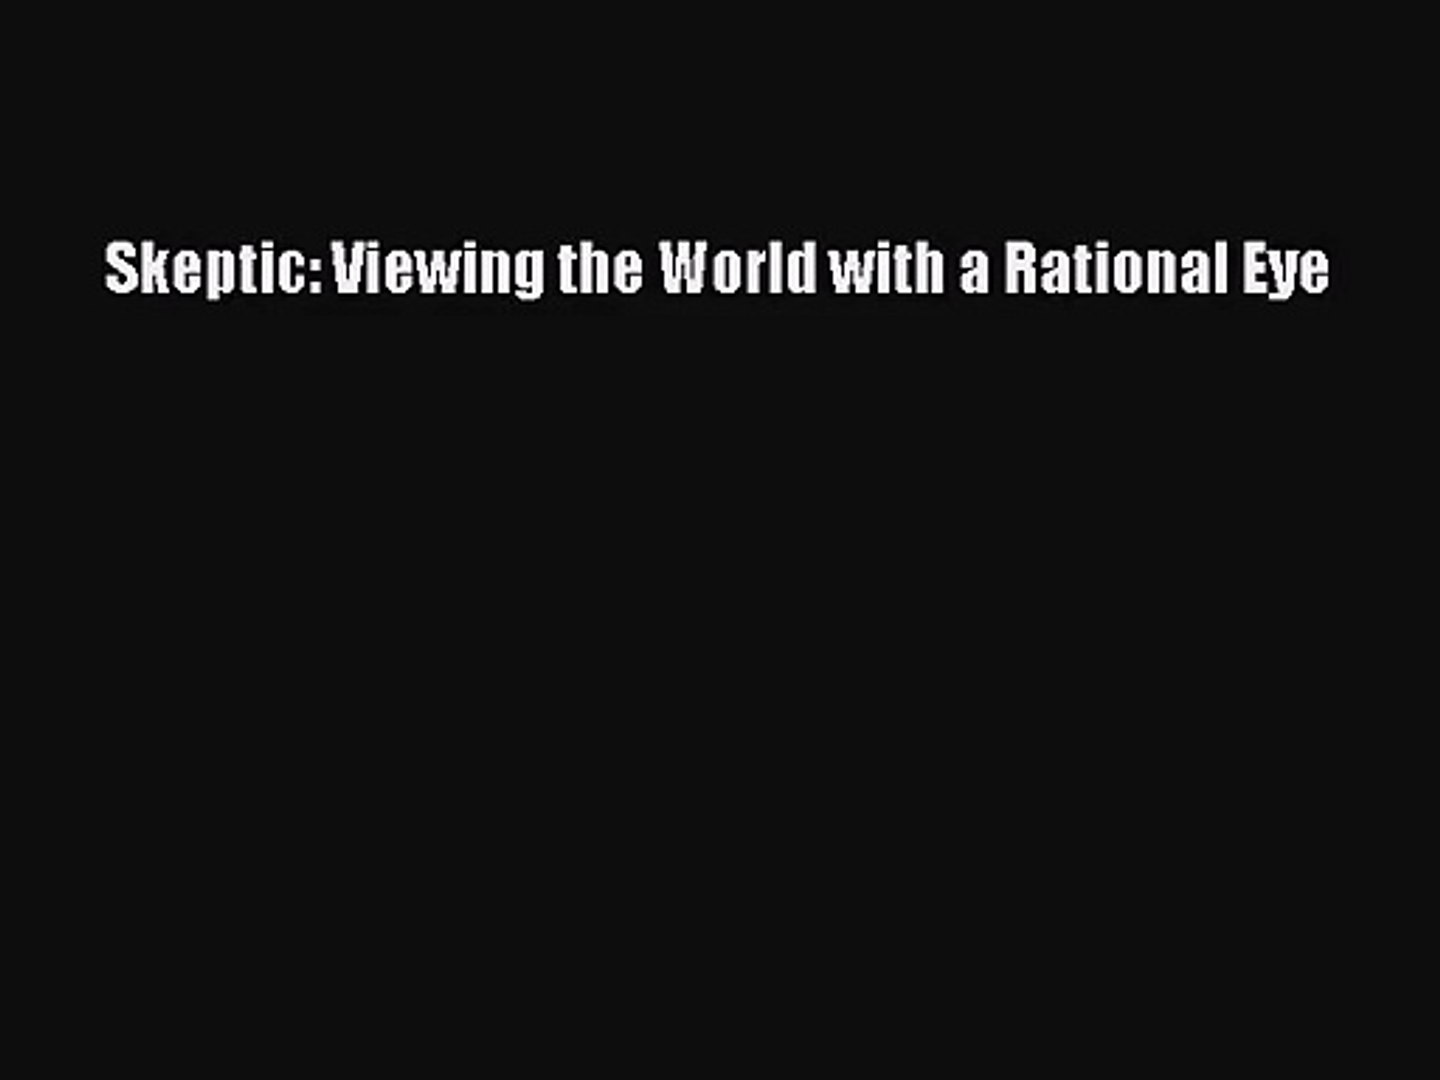 Skeptic: Viewing the World with a Rational Eye